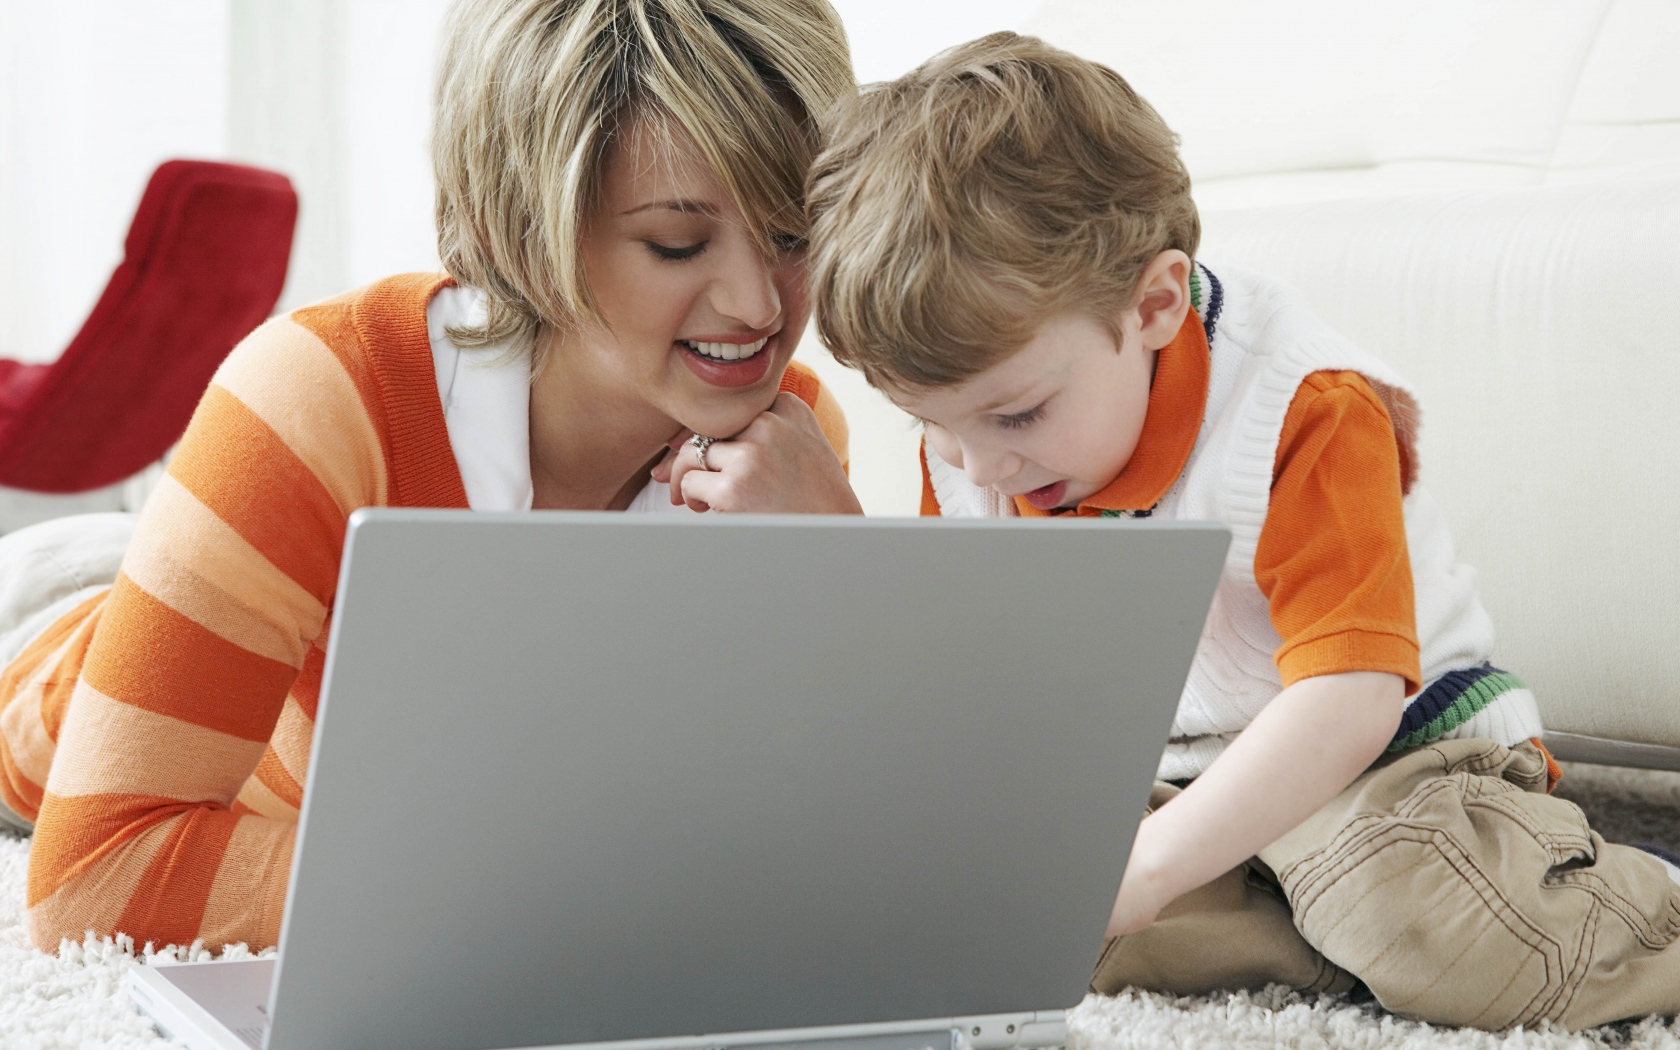 mother_son_laptop_80467_1280x1024